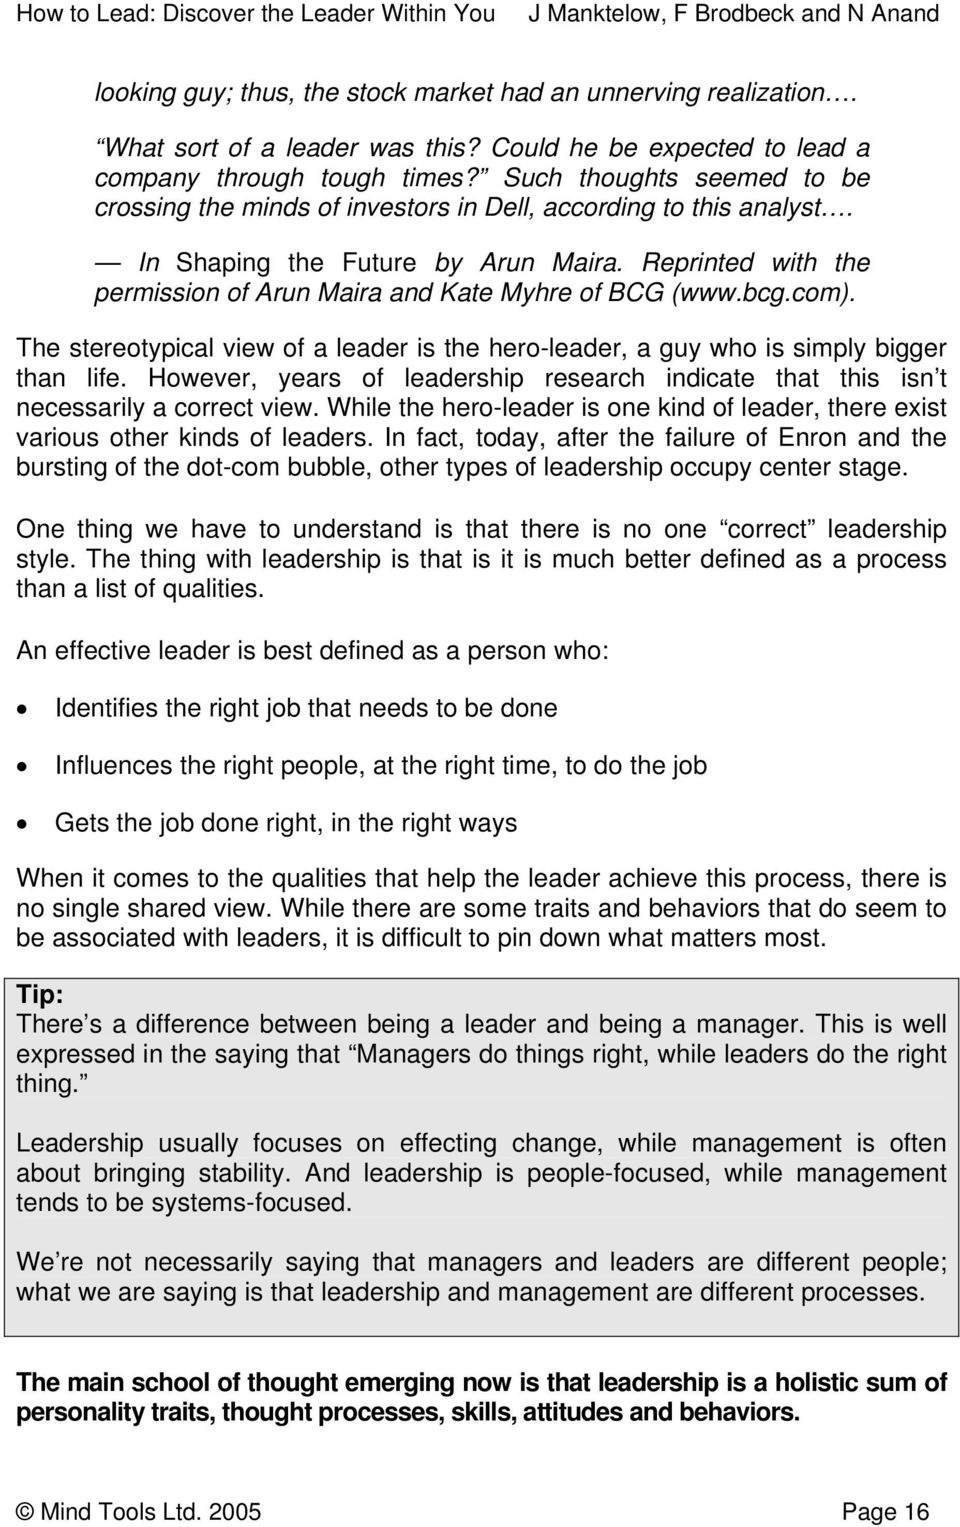 Reprinted with the permission of Arun Maira and Kate Myhre of BCG (www.bcg.com). The stereotypical view of a leader is the hero-leader, a guy who is simply bigger than life.